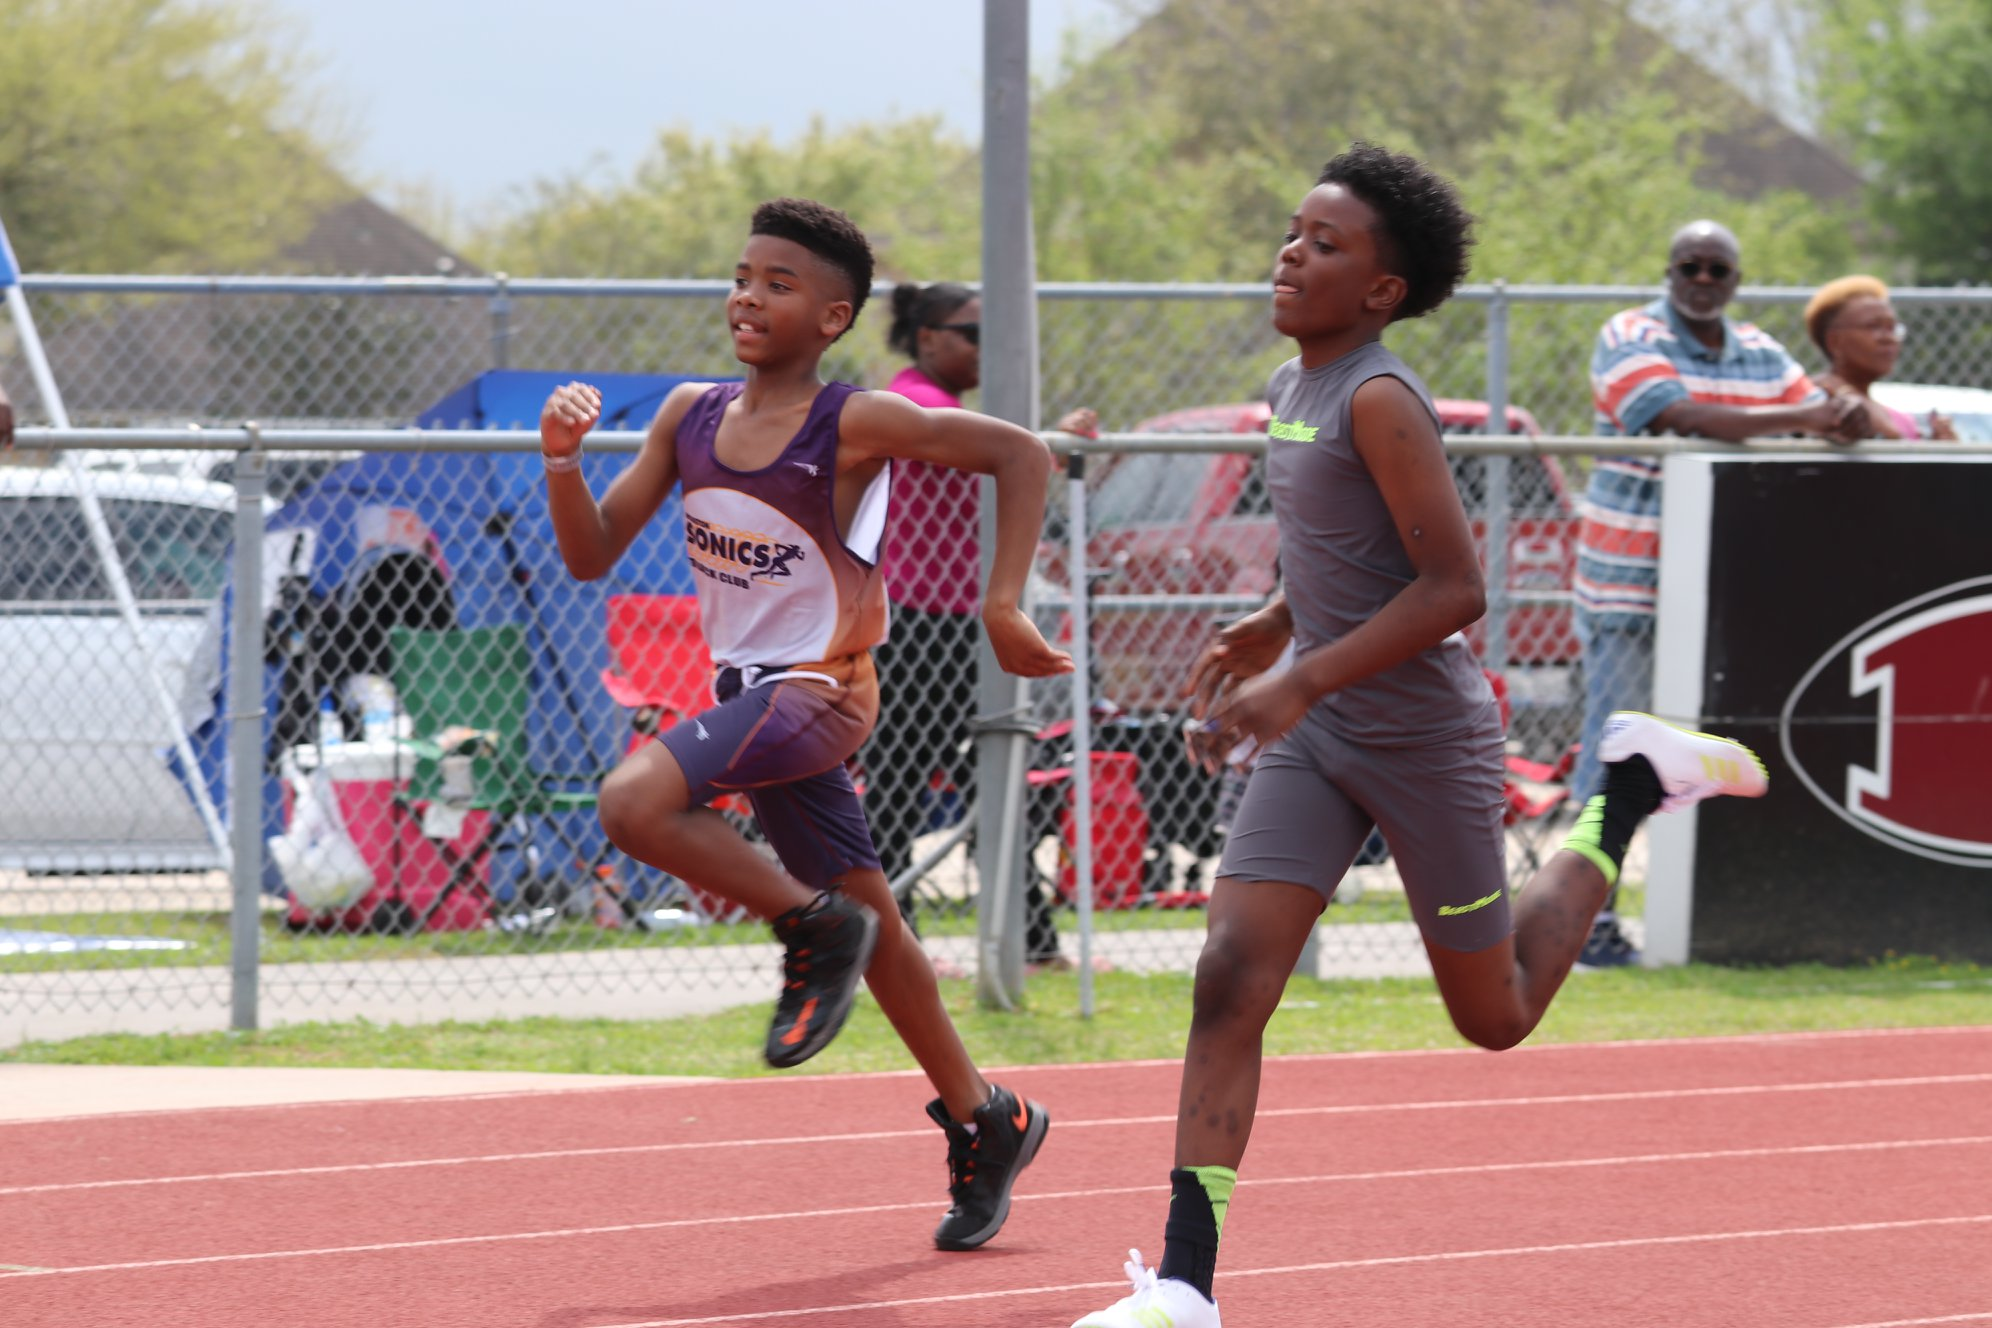 Camron running the 400